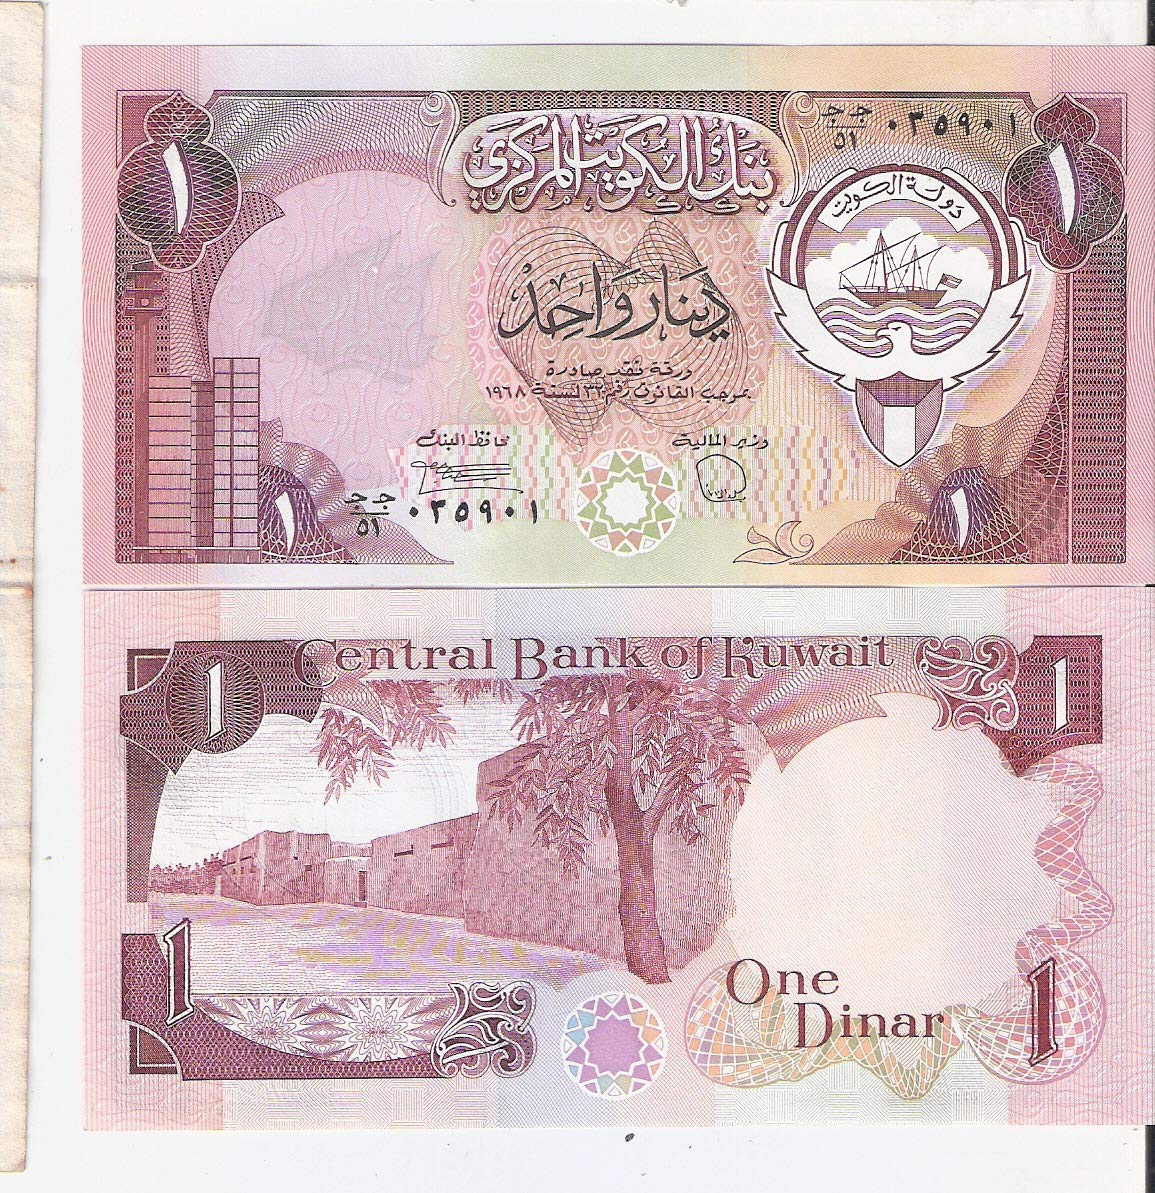 Rare Kuwait 1 Dinar Note UNC: Amazon.in: Toys & Games